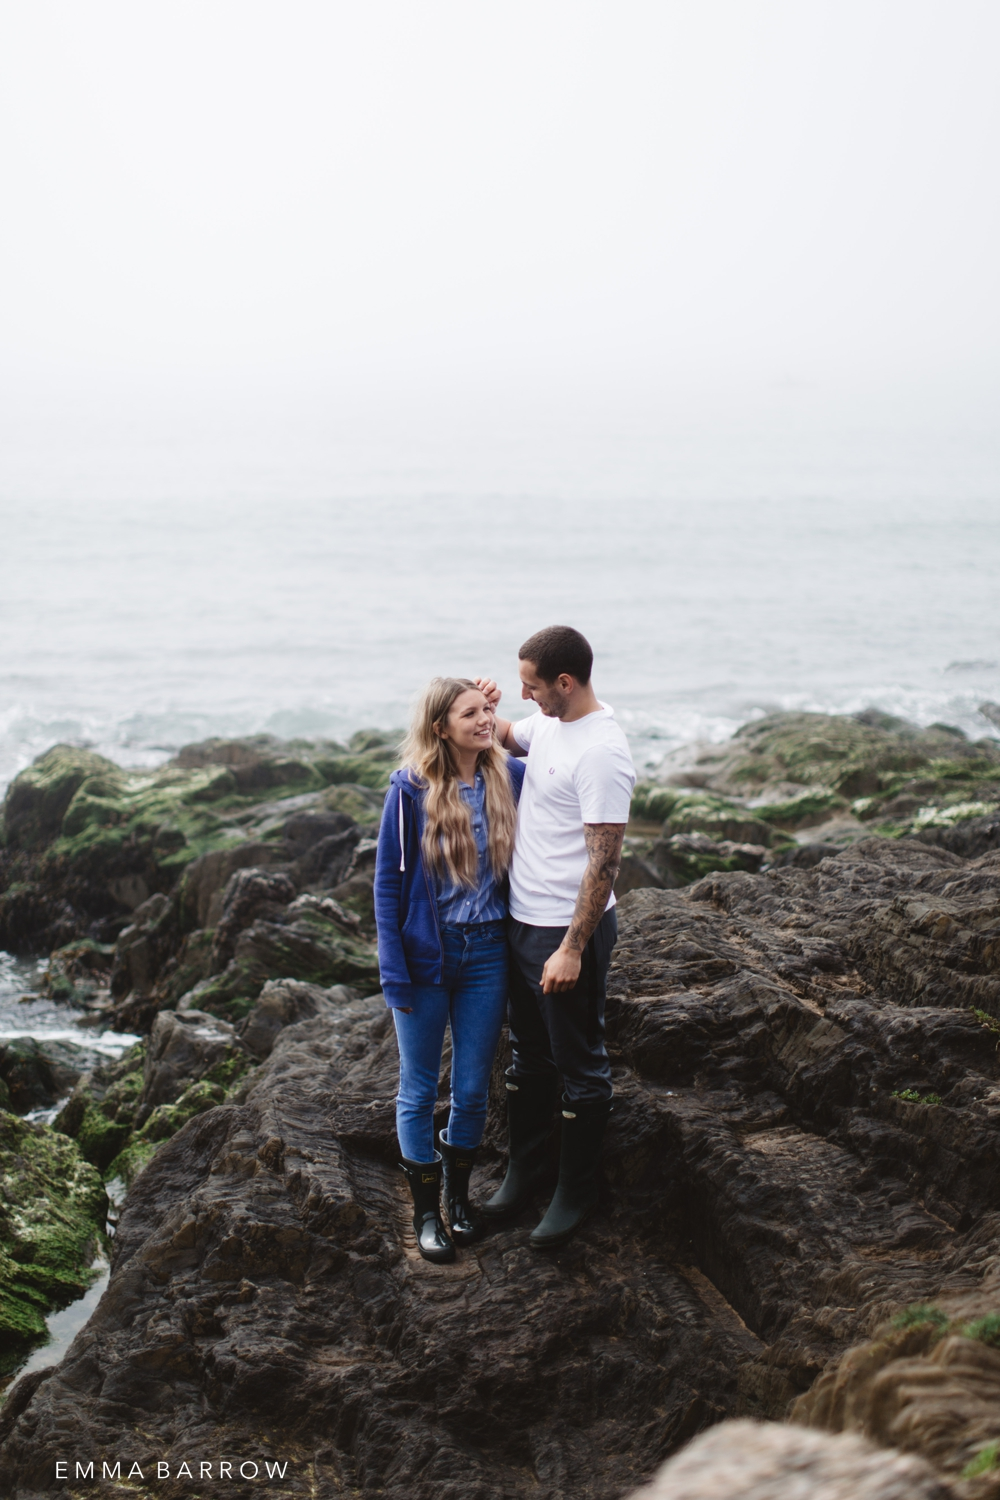 emmabarrow_hannahmattPreWed-12.jpg